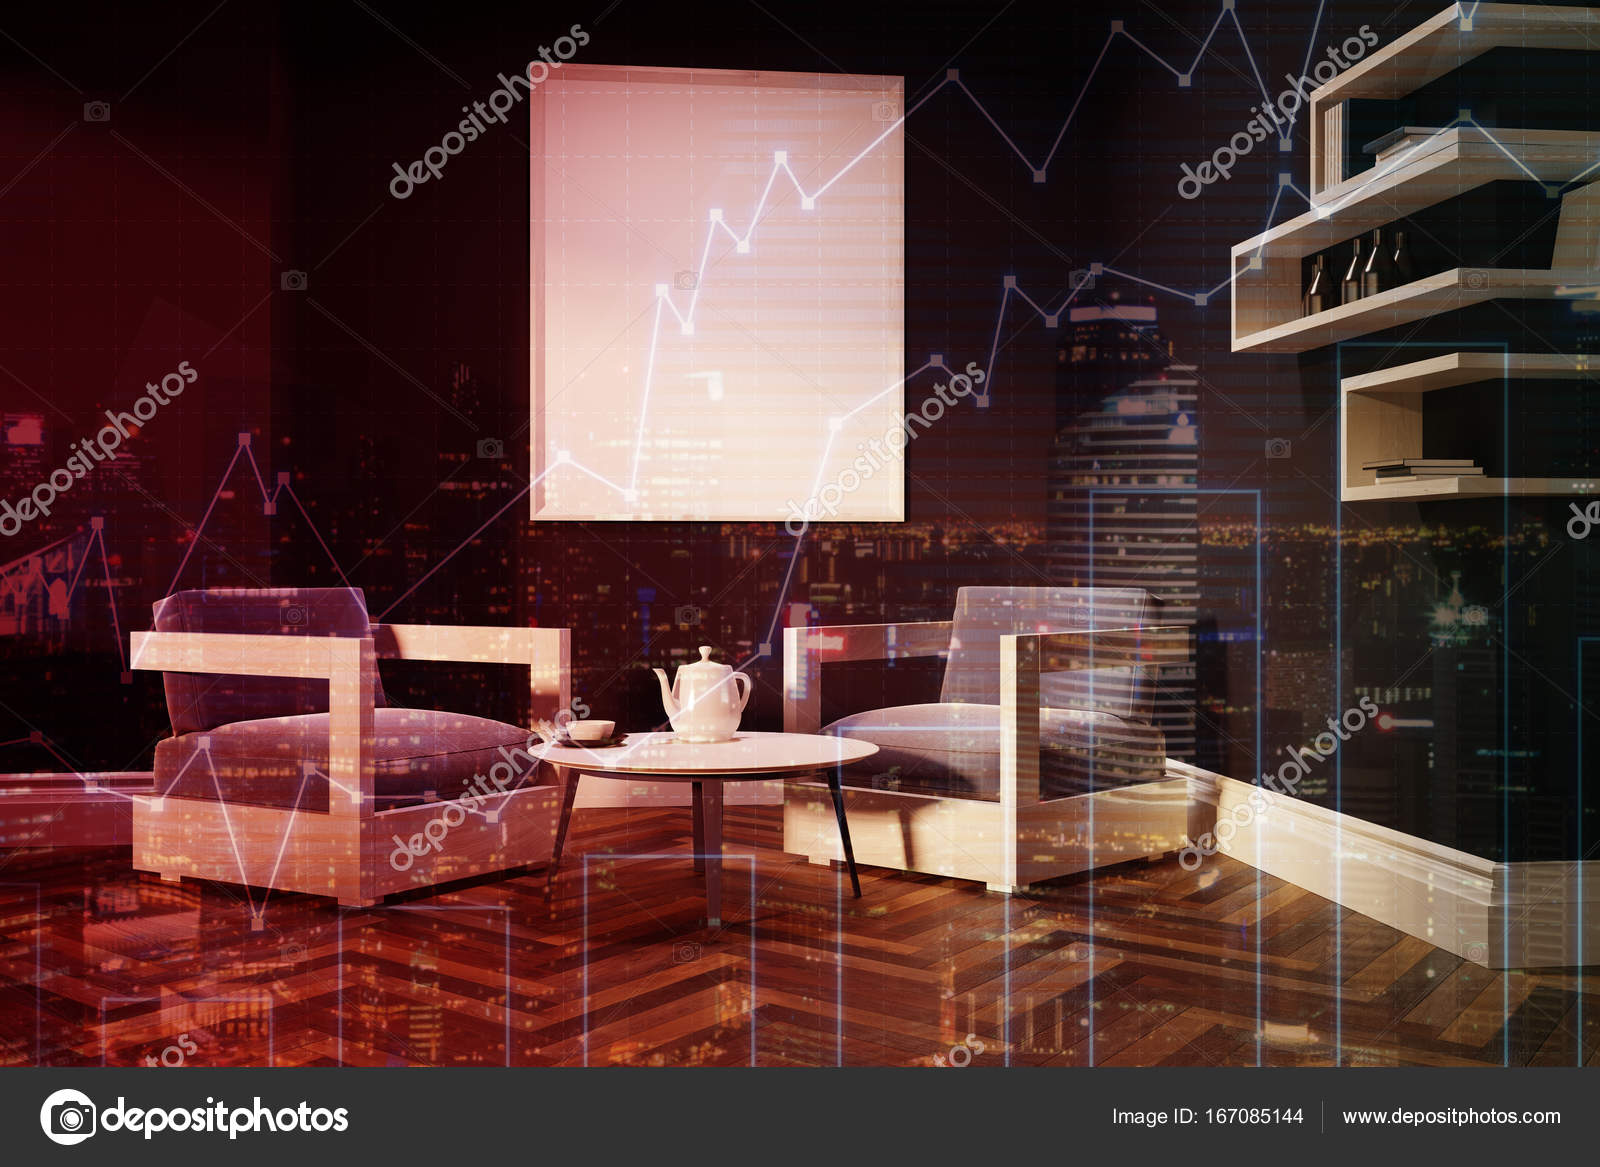 Donkerblauw woonkamer, Fauteuils, poster toned — Stockfoto ...